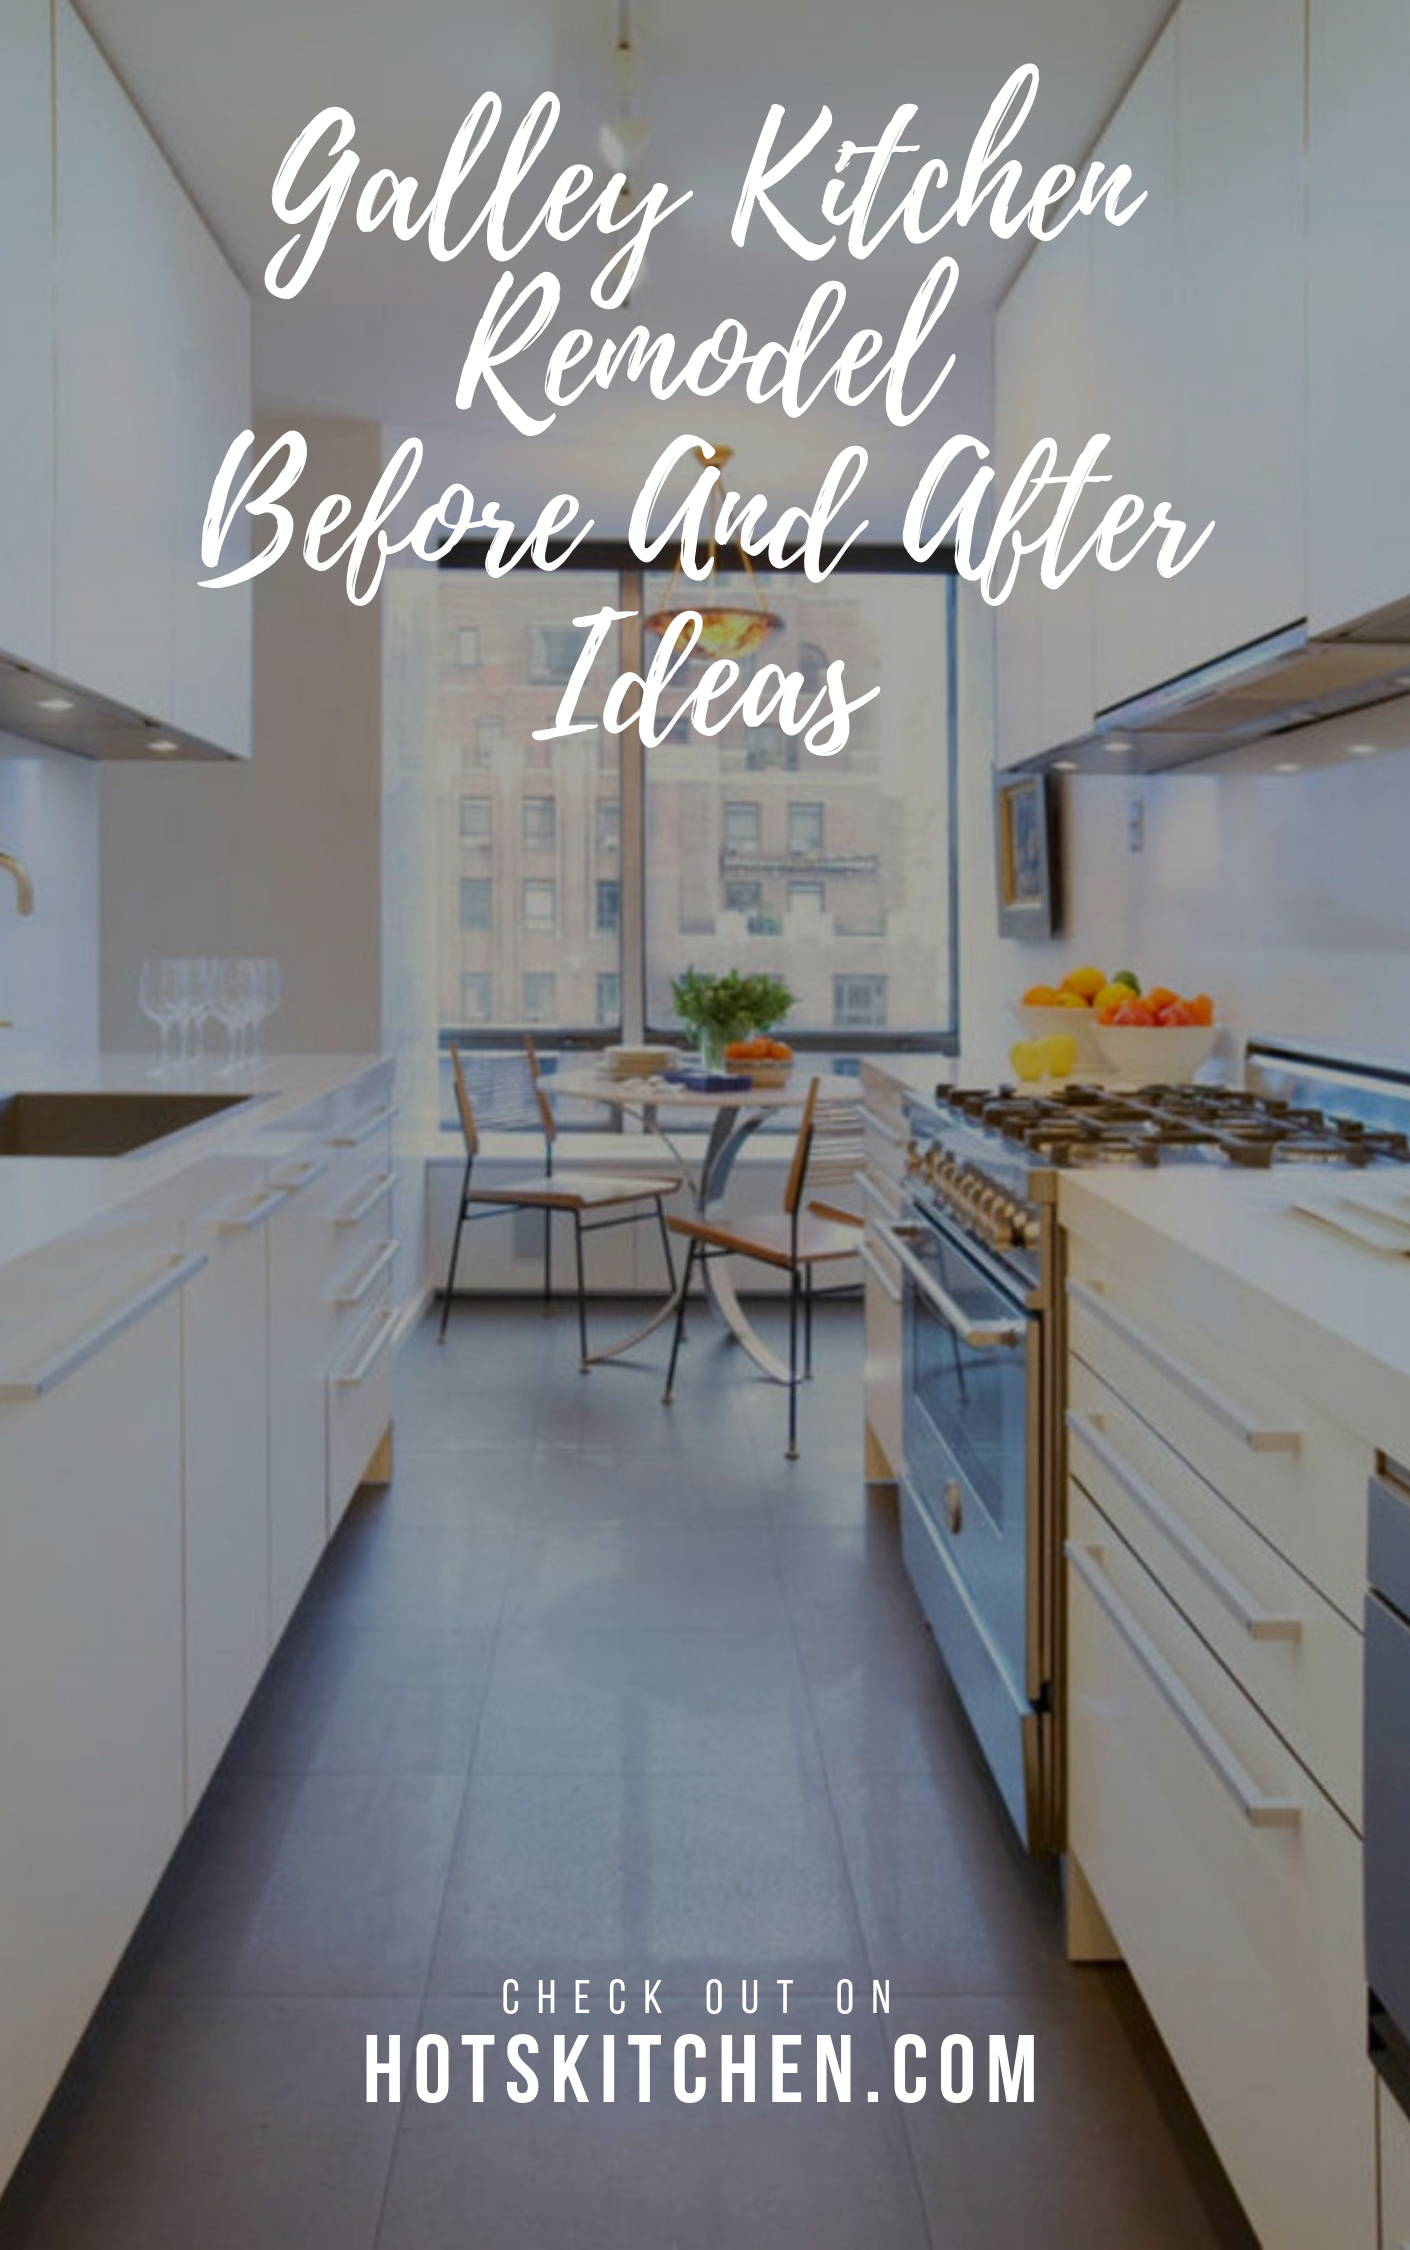 17 Galley Kitchen Remodel Before And After Ideas 2019